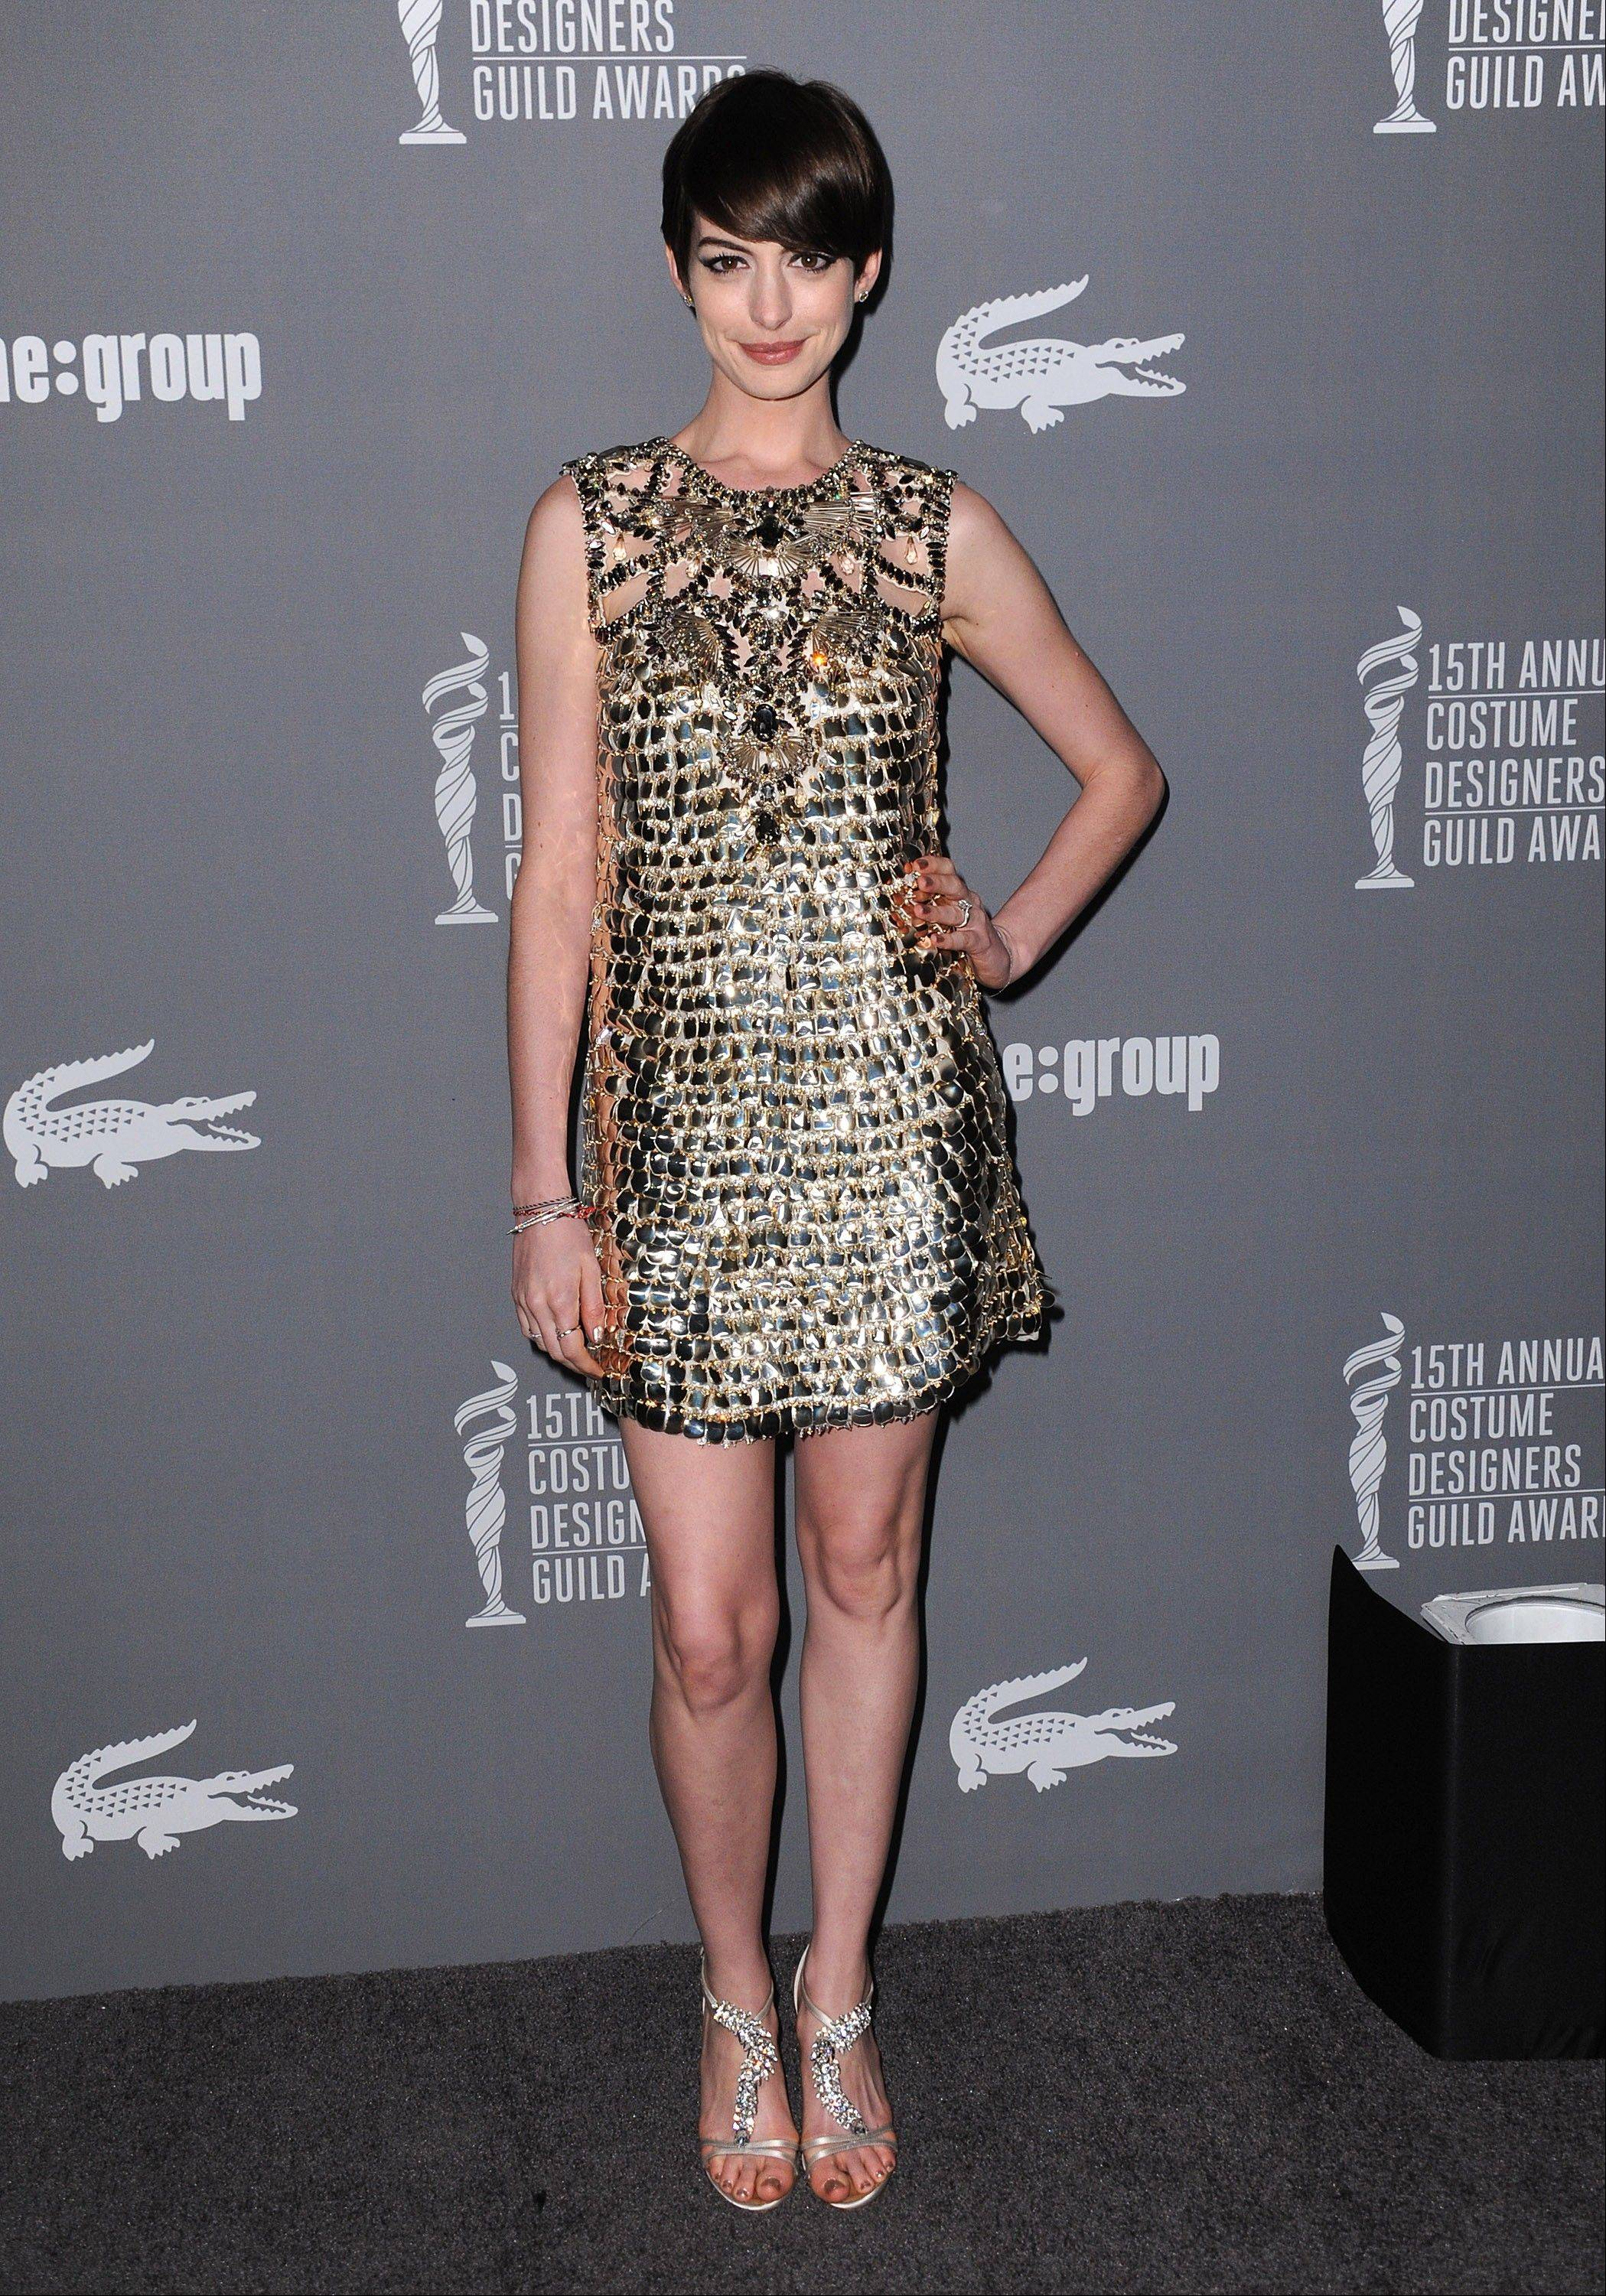 Anne Hathaway was honored with the spotlight award at the 15th Annual Costume Designers Guild Awards Tuesday in Beverly Hills.